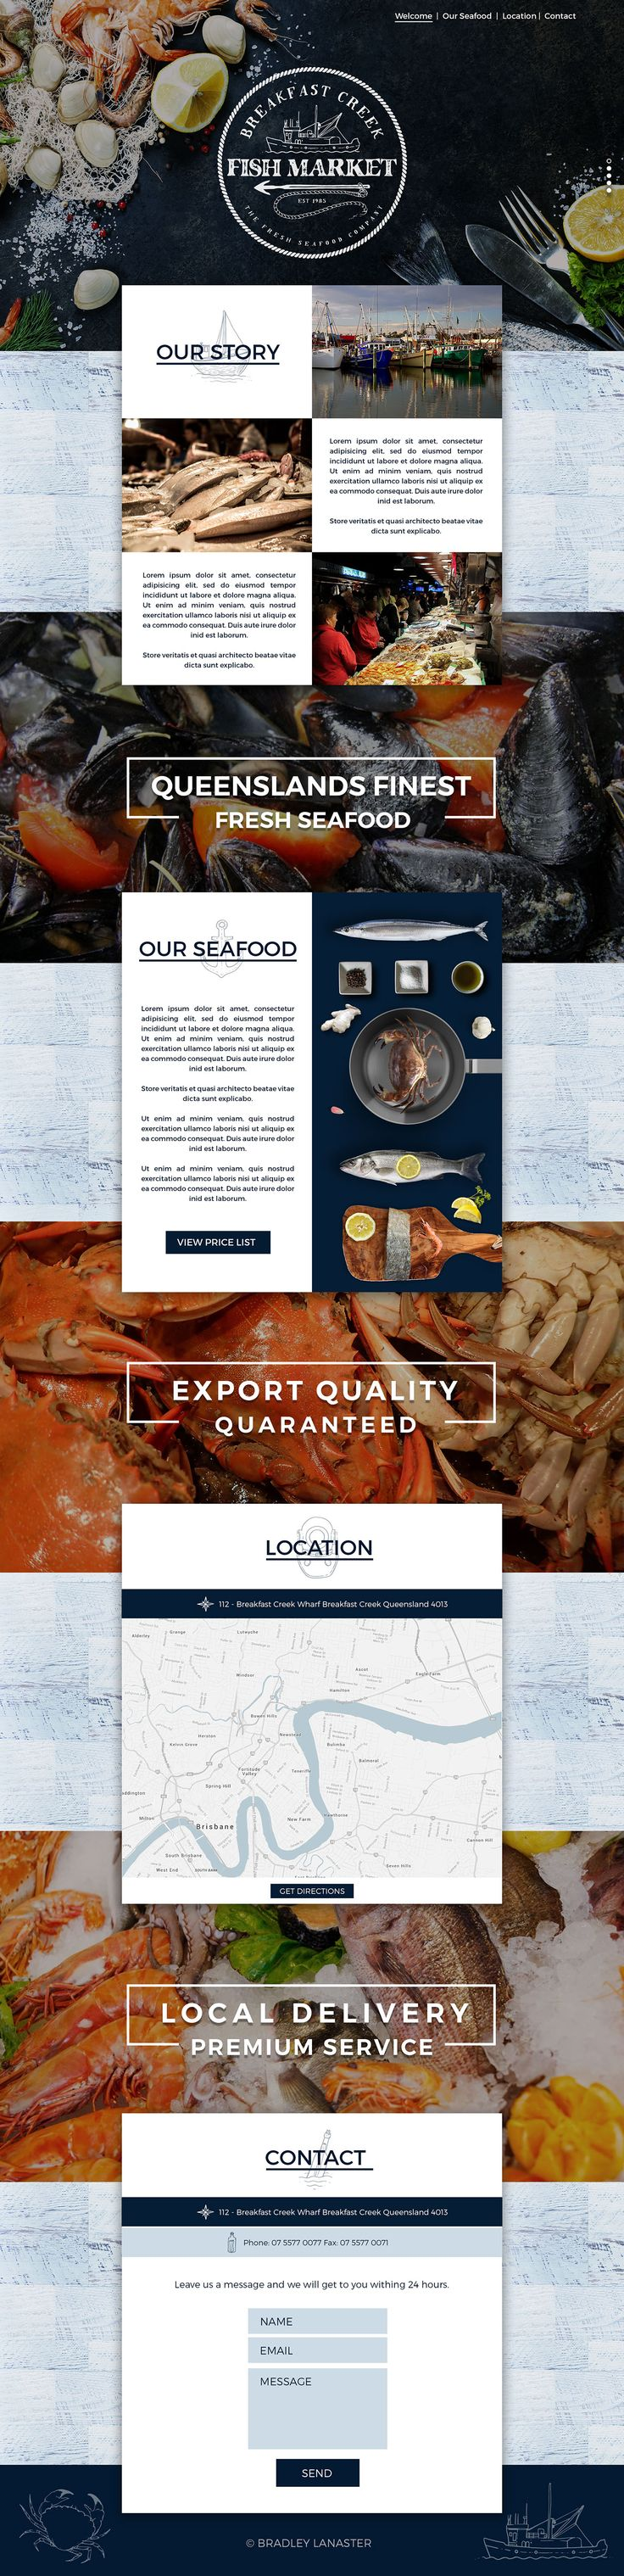 Breakfast Creek Fish Market - Website on Behance New Seafood Fish Market Website Design by Bradley Lancaster #bradleylancaster #webdesign #web #graphicDesign #fish #fishing #catch #brandingdesign #australia #brisbane #markets #fresh #healthy #bbq #behance #dribbble #ui #ux #theme #developer #wordpress #logodesigner #vintage #topview #website #programming #frontend bradleylancaster.com